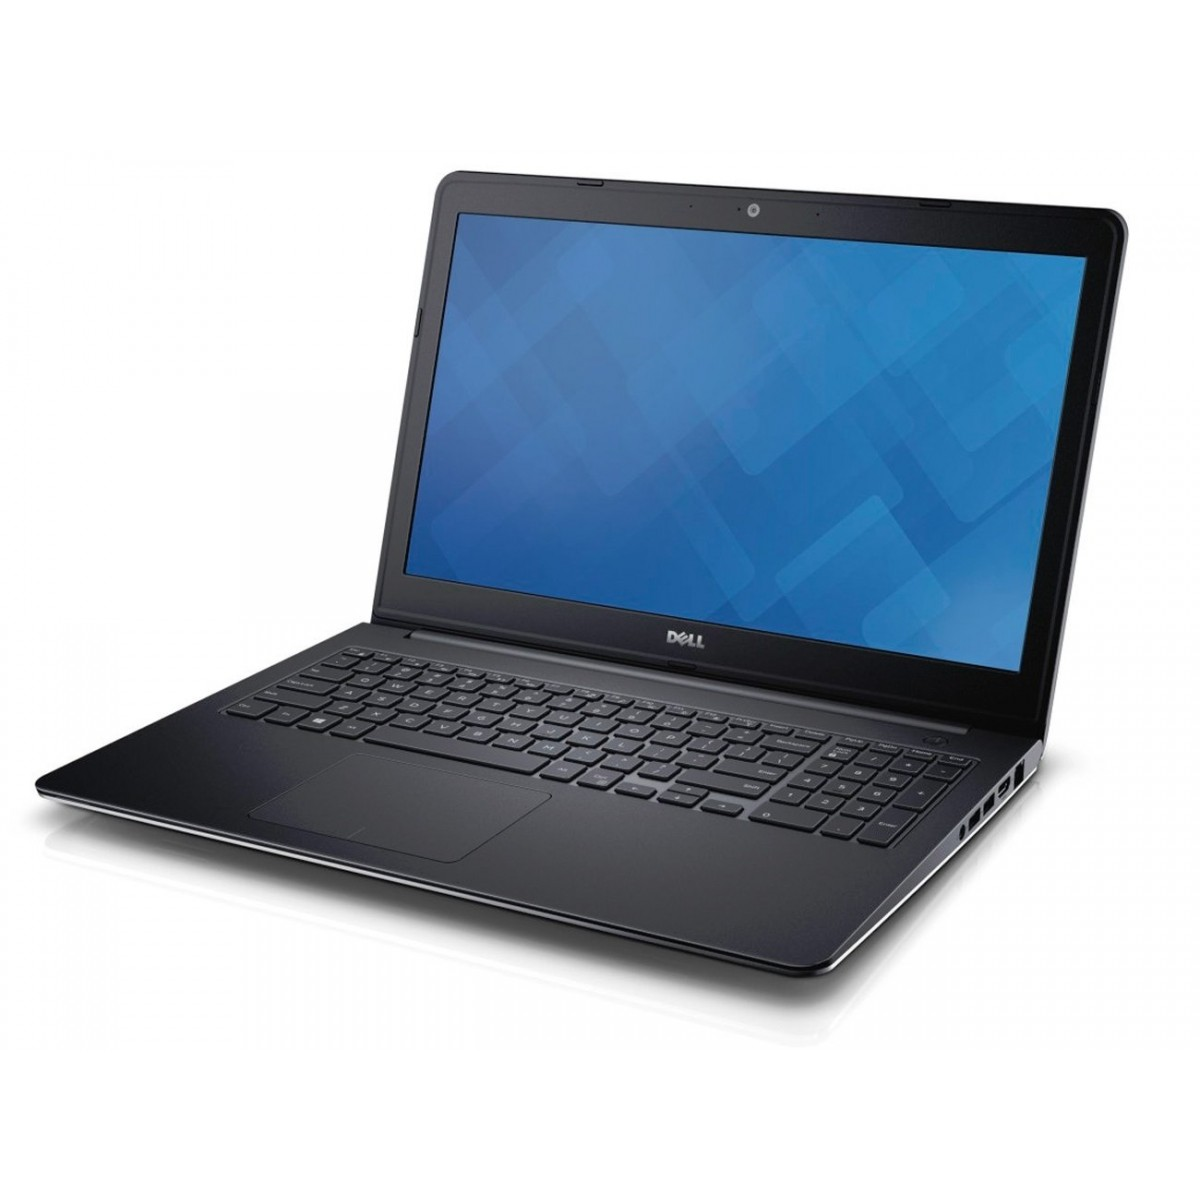 Notebook Dell Inspiron 5548 Core I7 5500U 3.0 Ghz |1Tb |8Gb |R7-M265(2Gb) |Touch |15.6 | Win 10Home